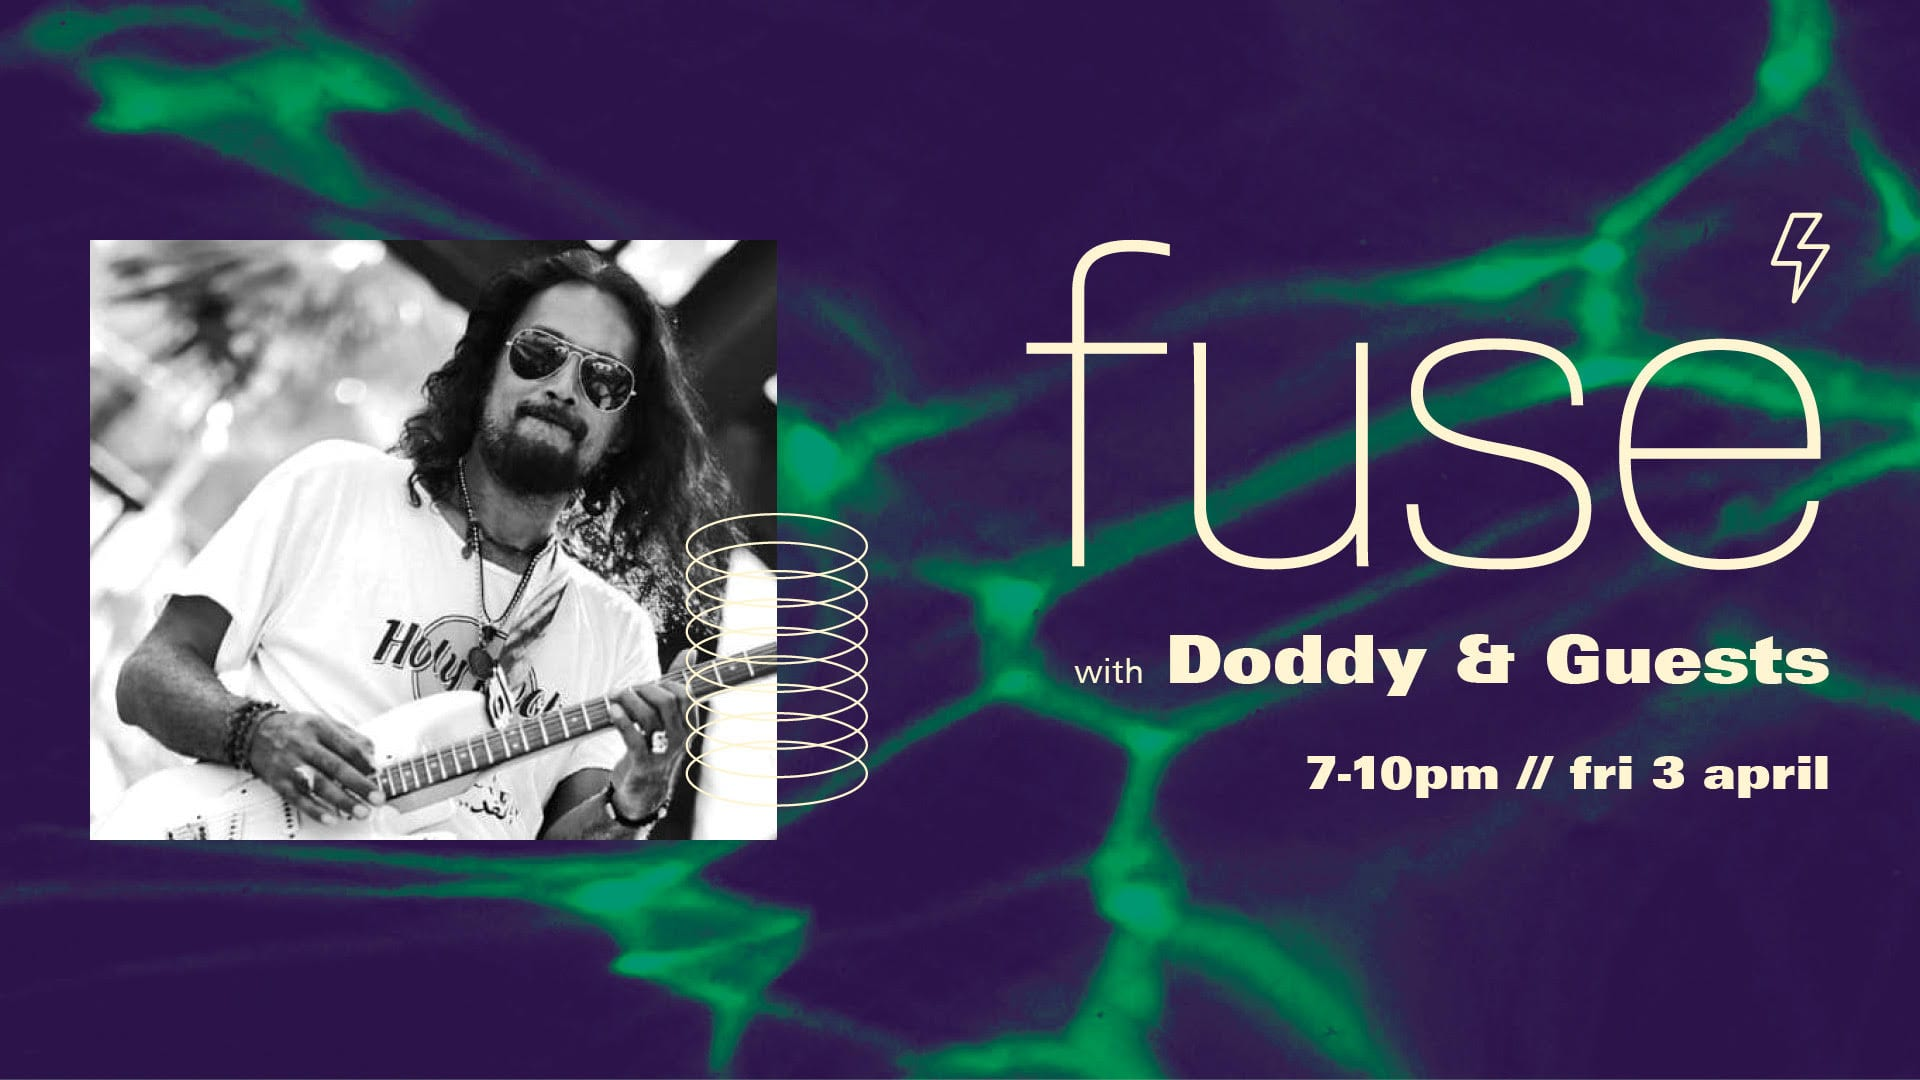 FUSE featuring Doddy & Guests